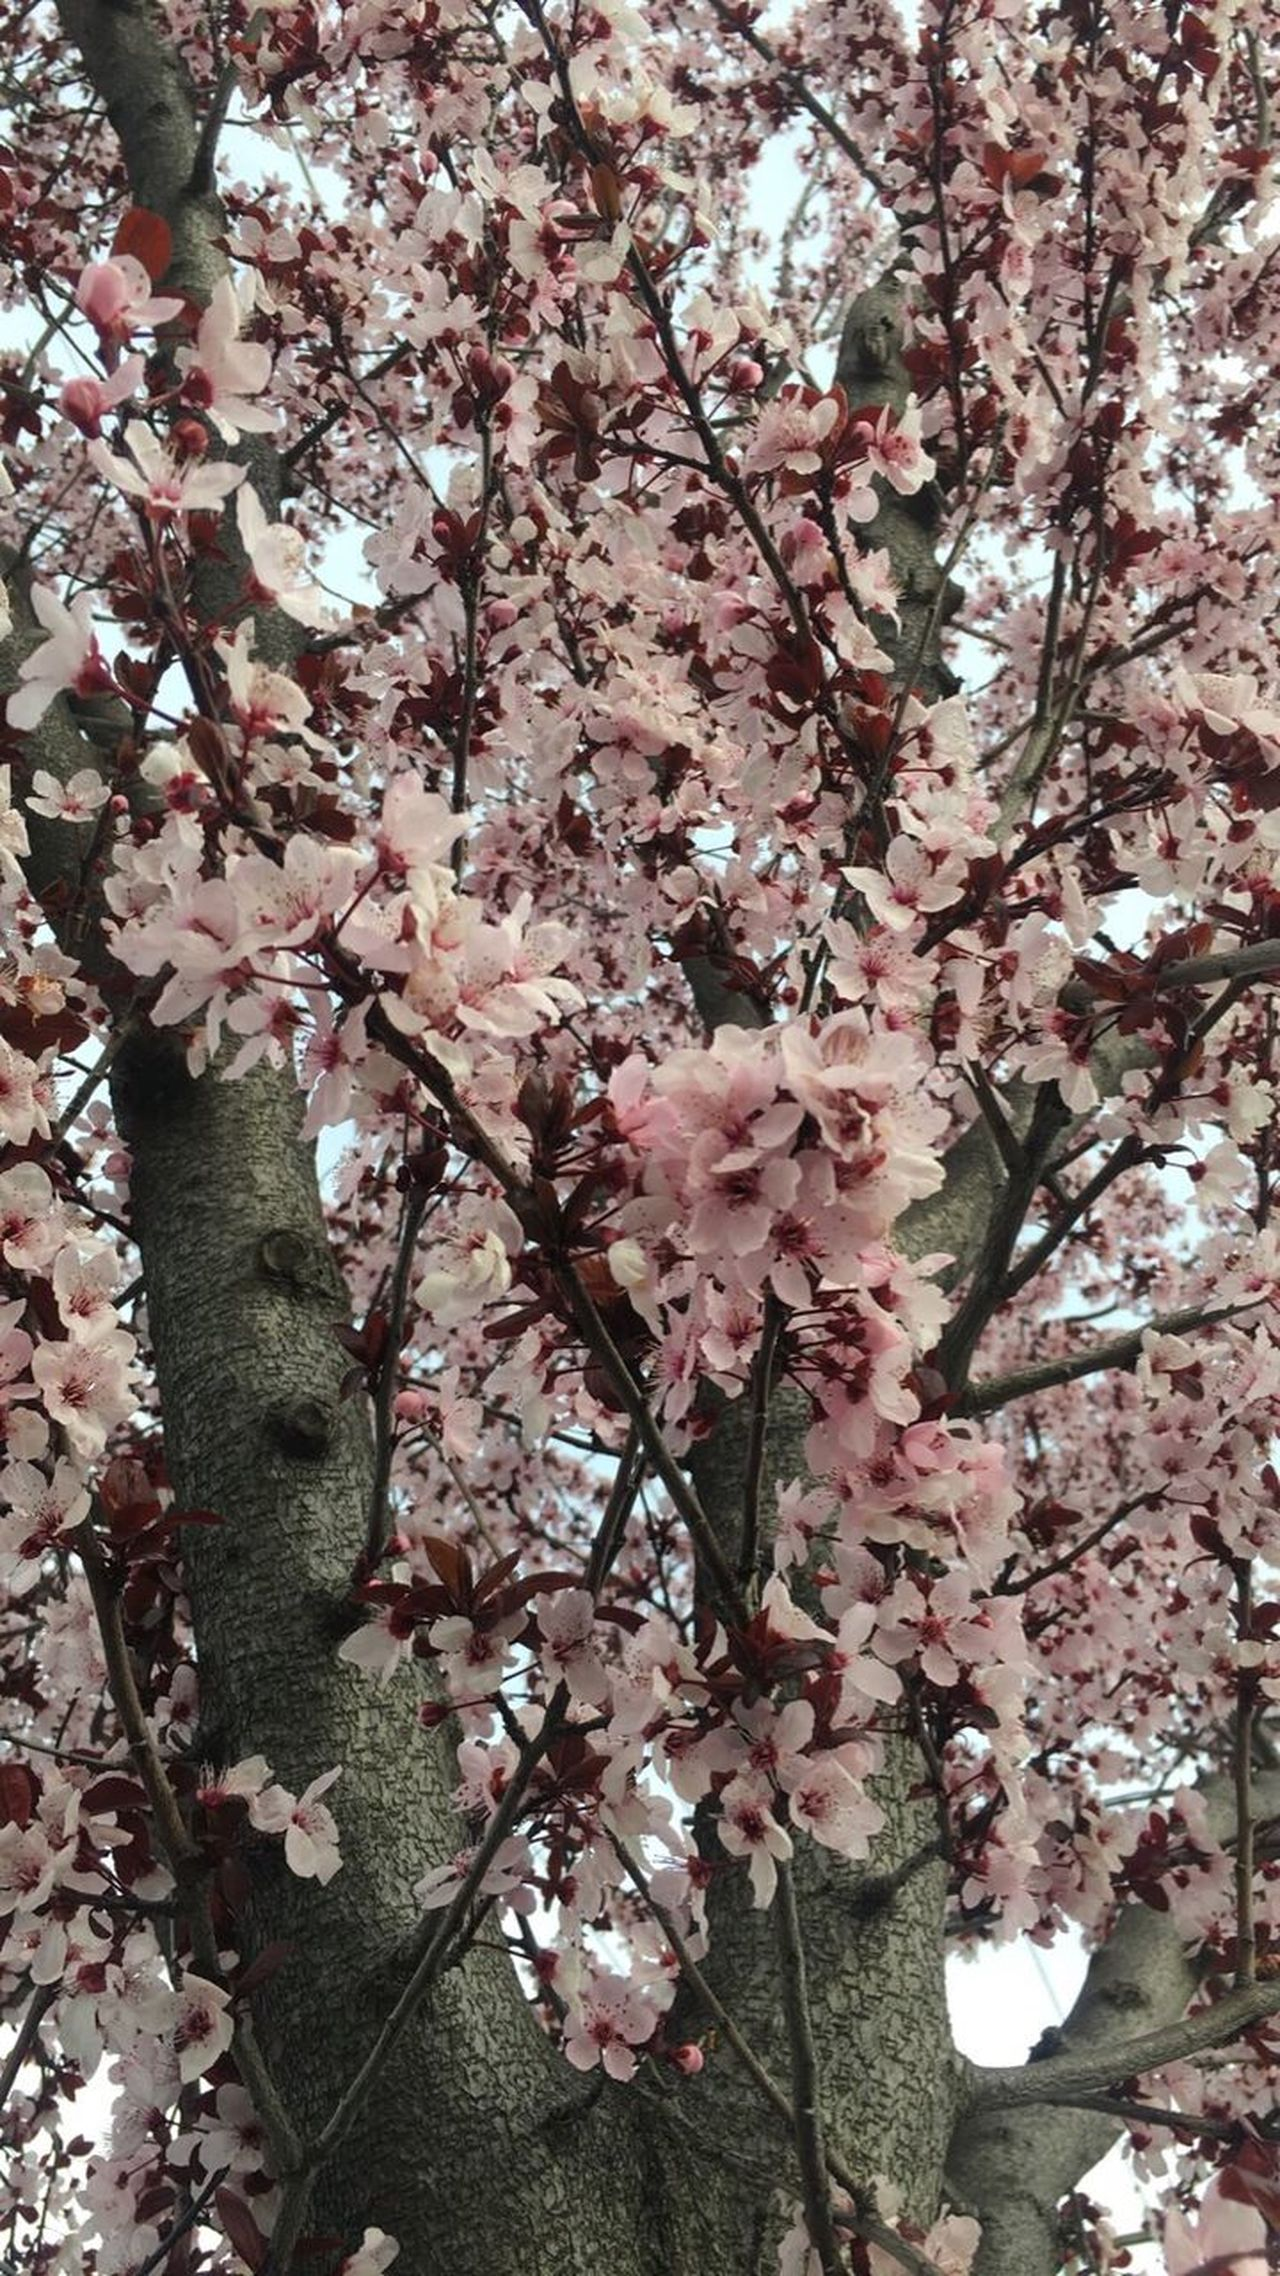 Nature No People Branch Cherry Flowers Beauty In Nature Cherry Blossoms Cherry Blossom Viewing Outdoors Cherry Blossom Nature Photography Pink Flower Pink Color Cherry Blossom Tree Light Pink Pink Flower 🌸 Pink Cherry Flower Flower Nature (null) Tree Low Angle View Springtime Millennial Pink The Great Outdoors - 2017 EyeEm Awards